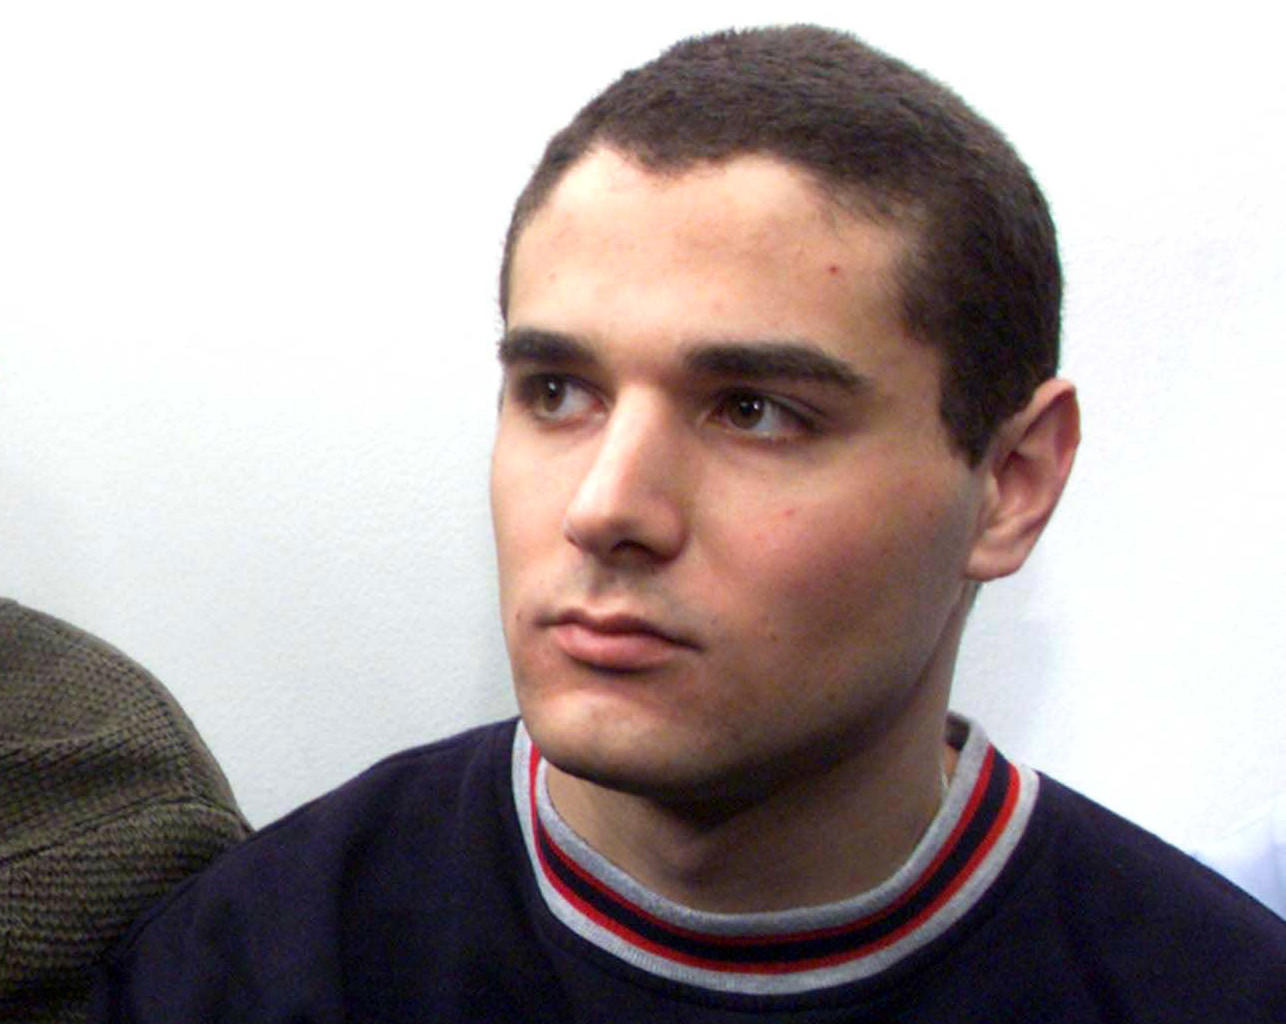 U.S. Jewish teenager Samuel Sheinbein, 18, arrives at the Tel Aviv District Court in this March 22, 1999 file photo. Israeli police shot dead American-Israeli prisoner Sheinbein on February 23, 2014 after he wounded three guards with a pistol at a jail near Tel Aviv, police said. Police spokesman Micky Rosenfeld said Sheinbein, serving a 24-year sentence for a 1997 Maryland murder, had shot the three security officers, leaving one critically injured.